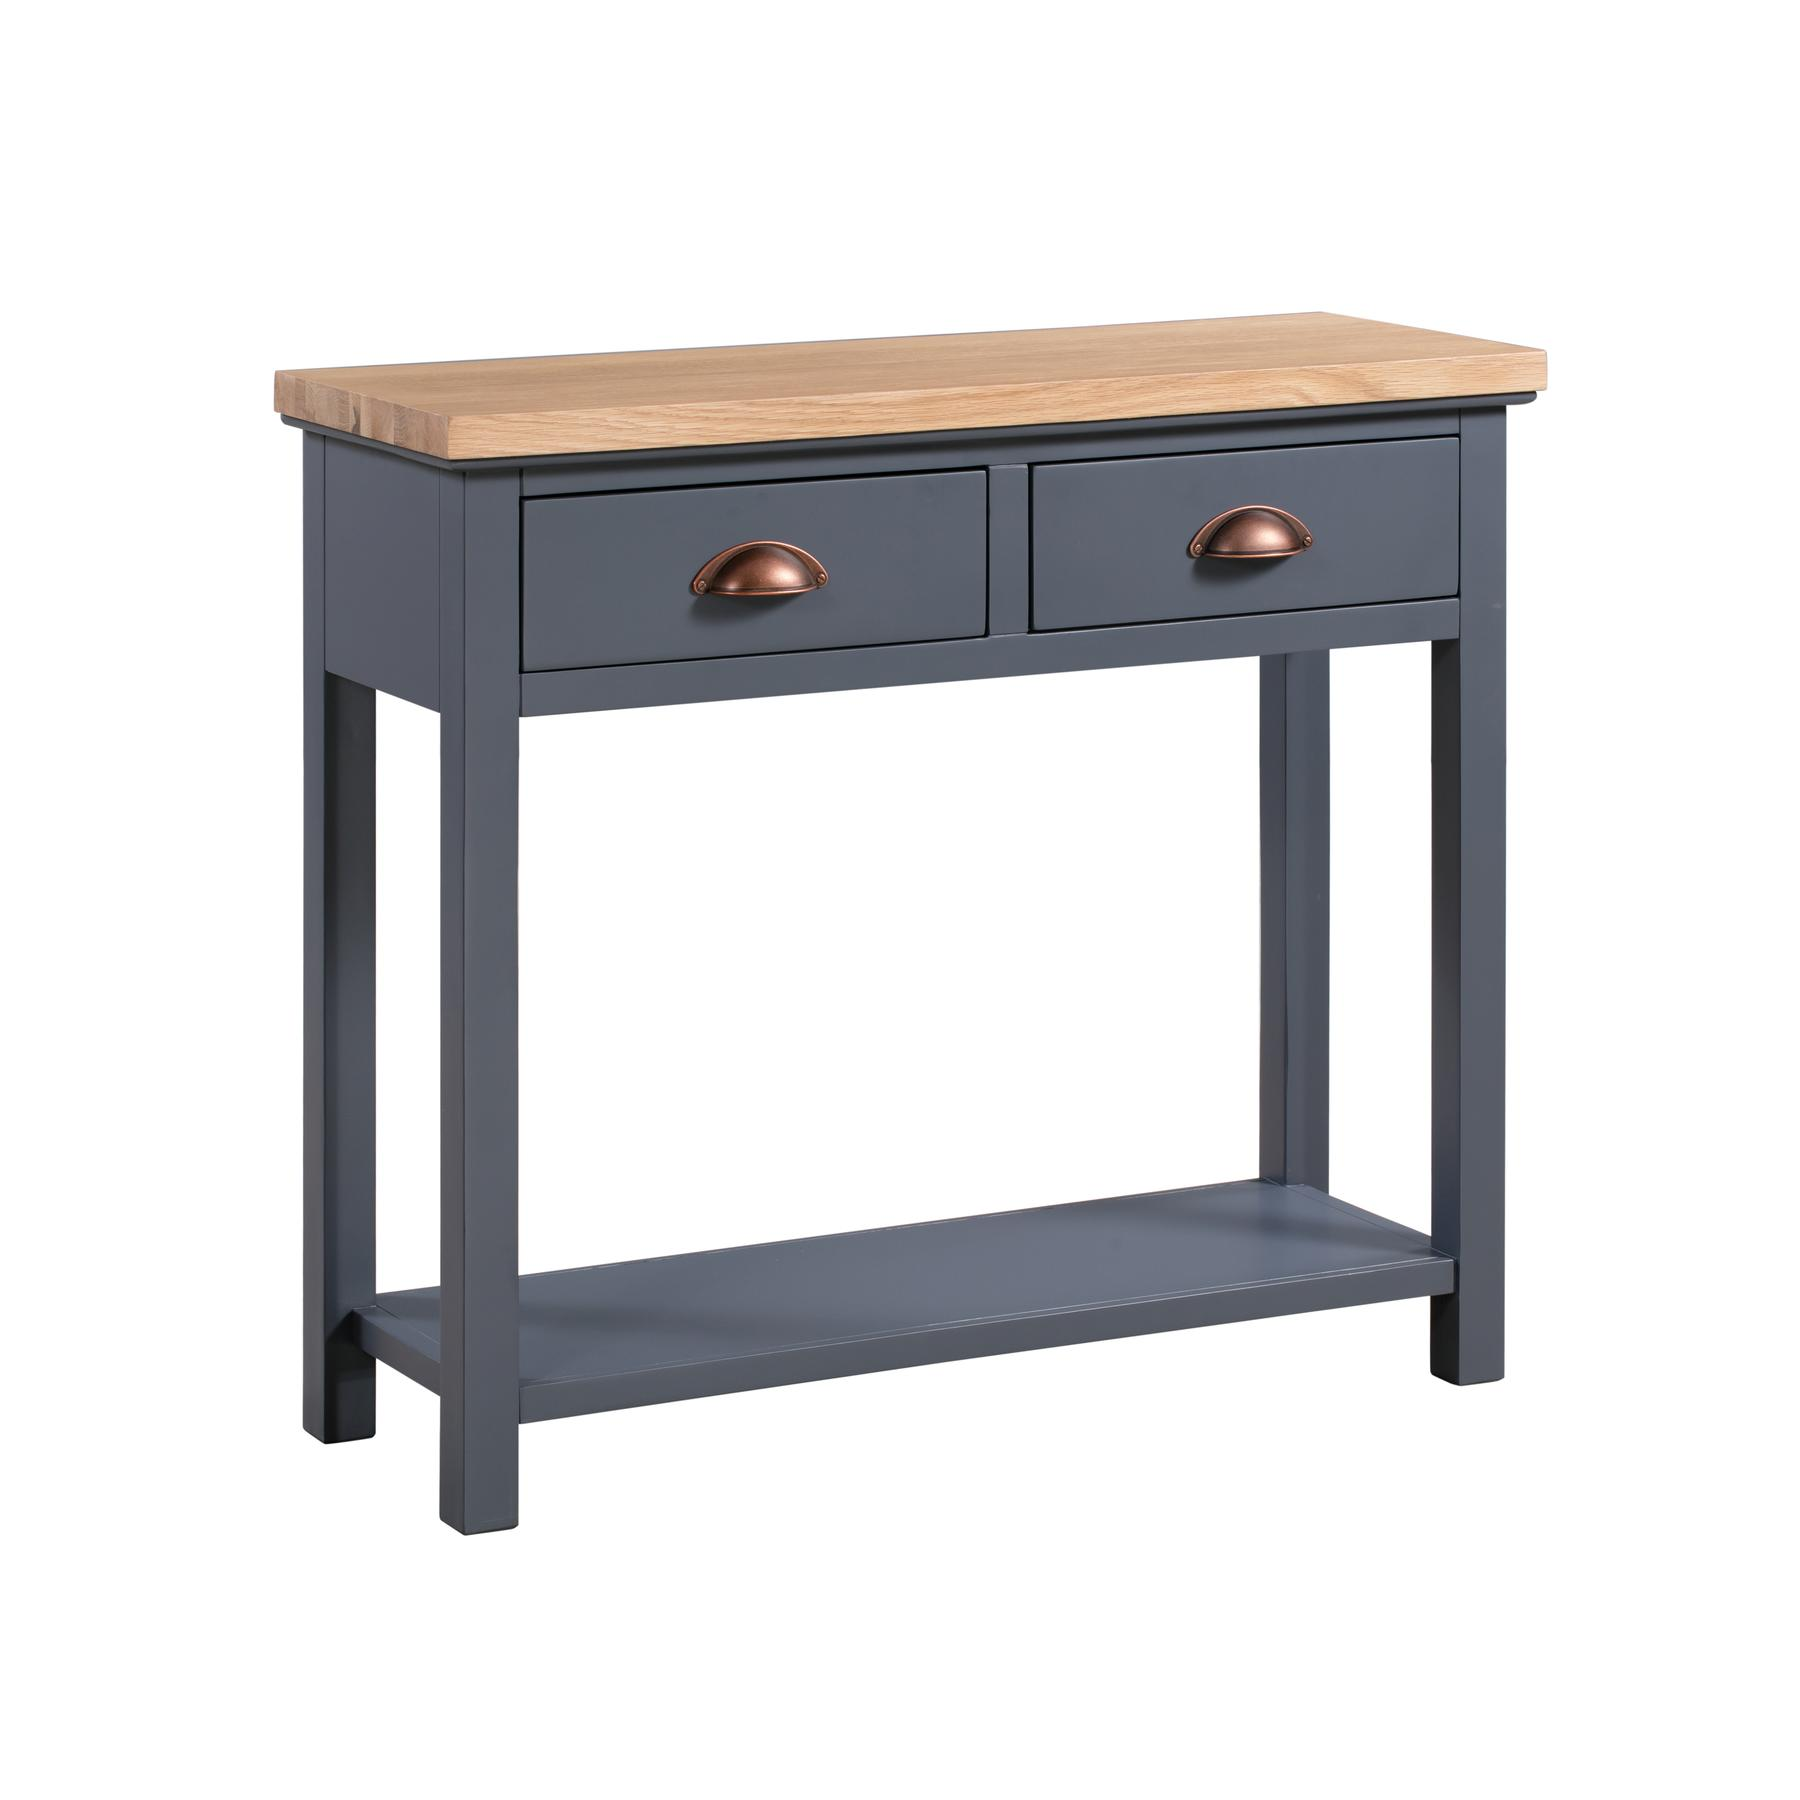 The Richmond Oak Collection Two Drawer Console Table